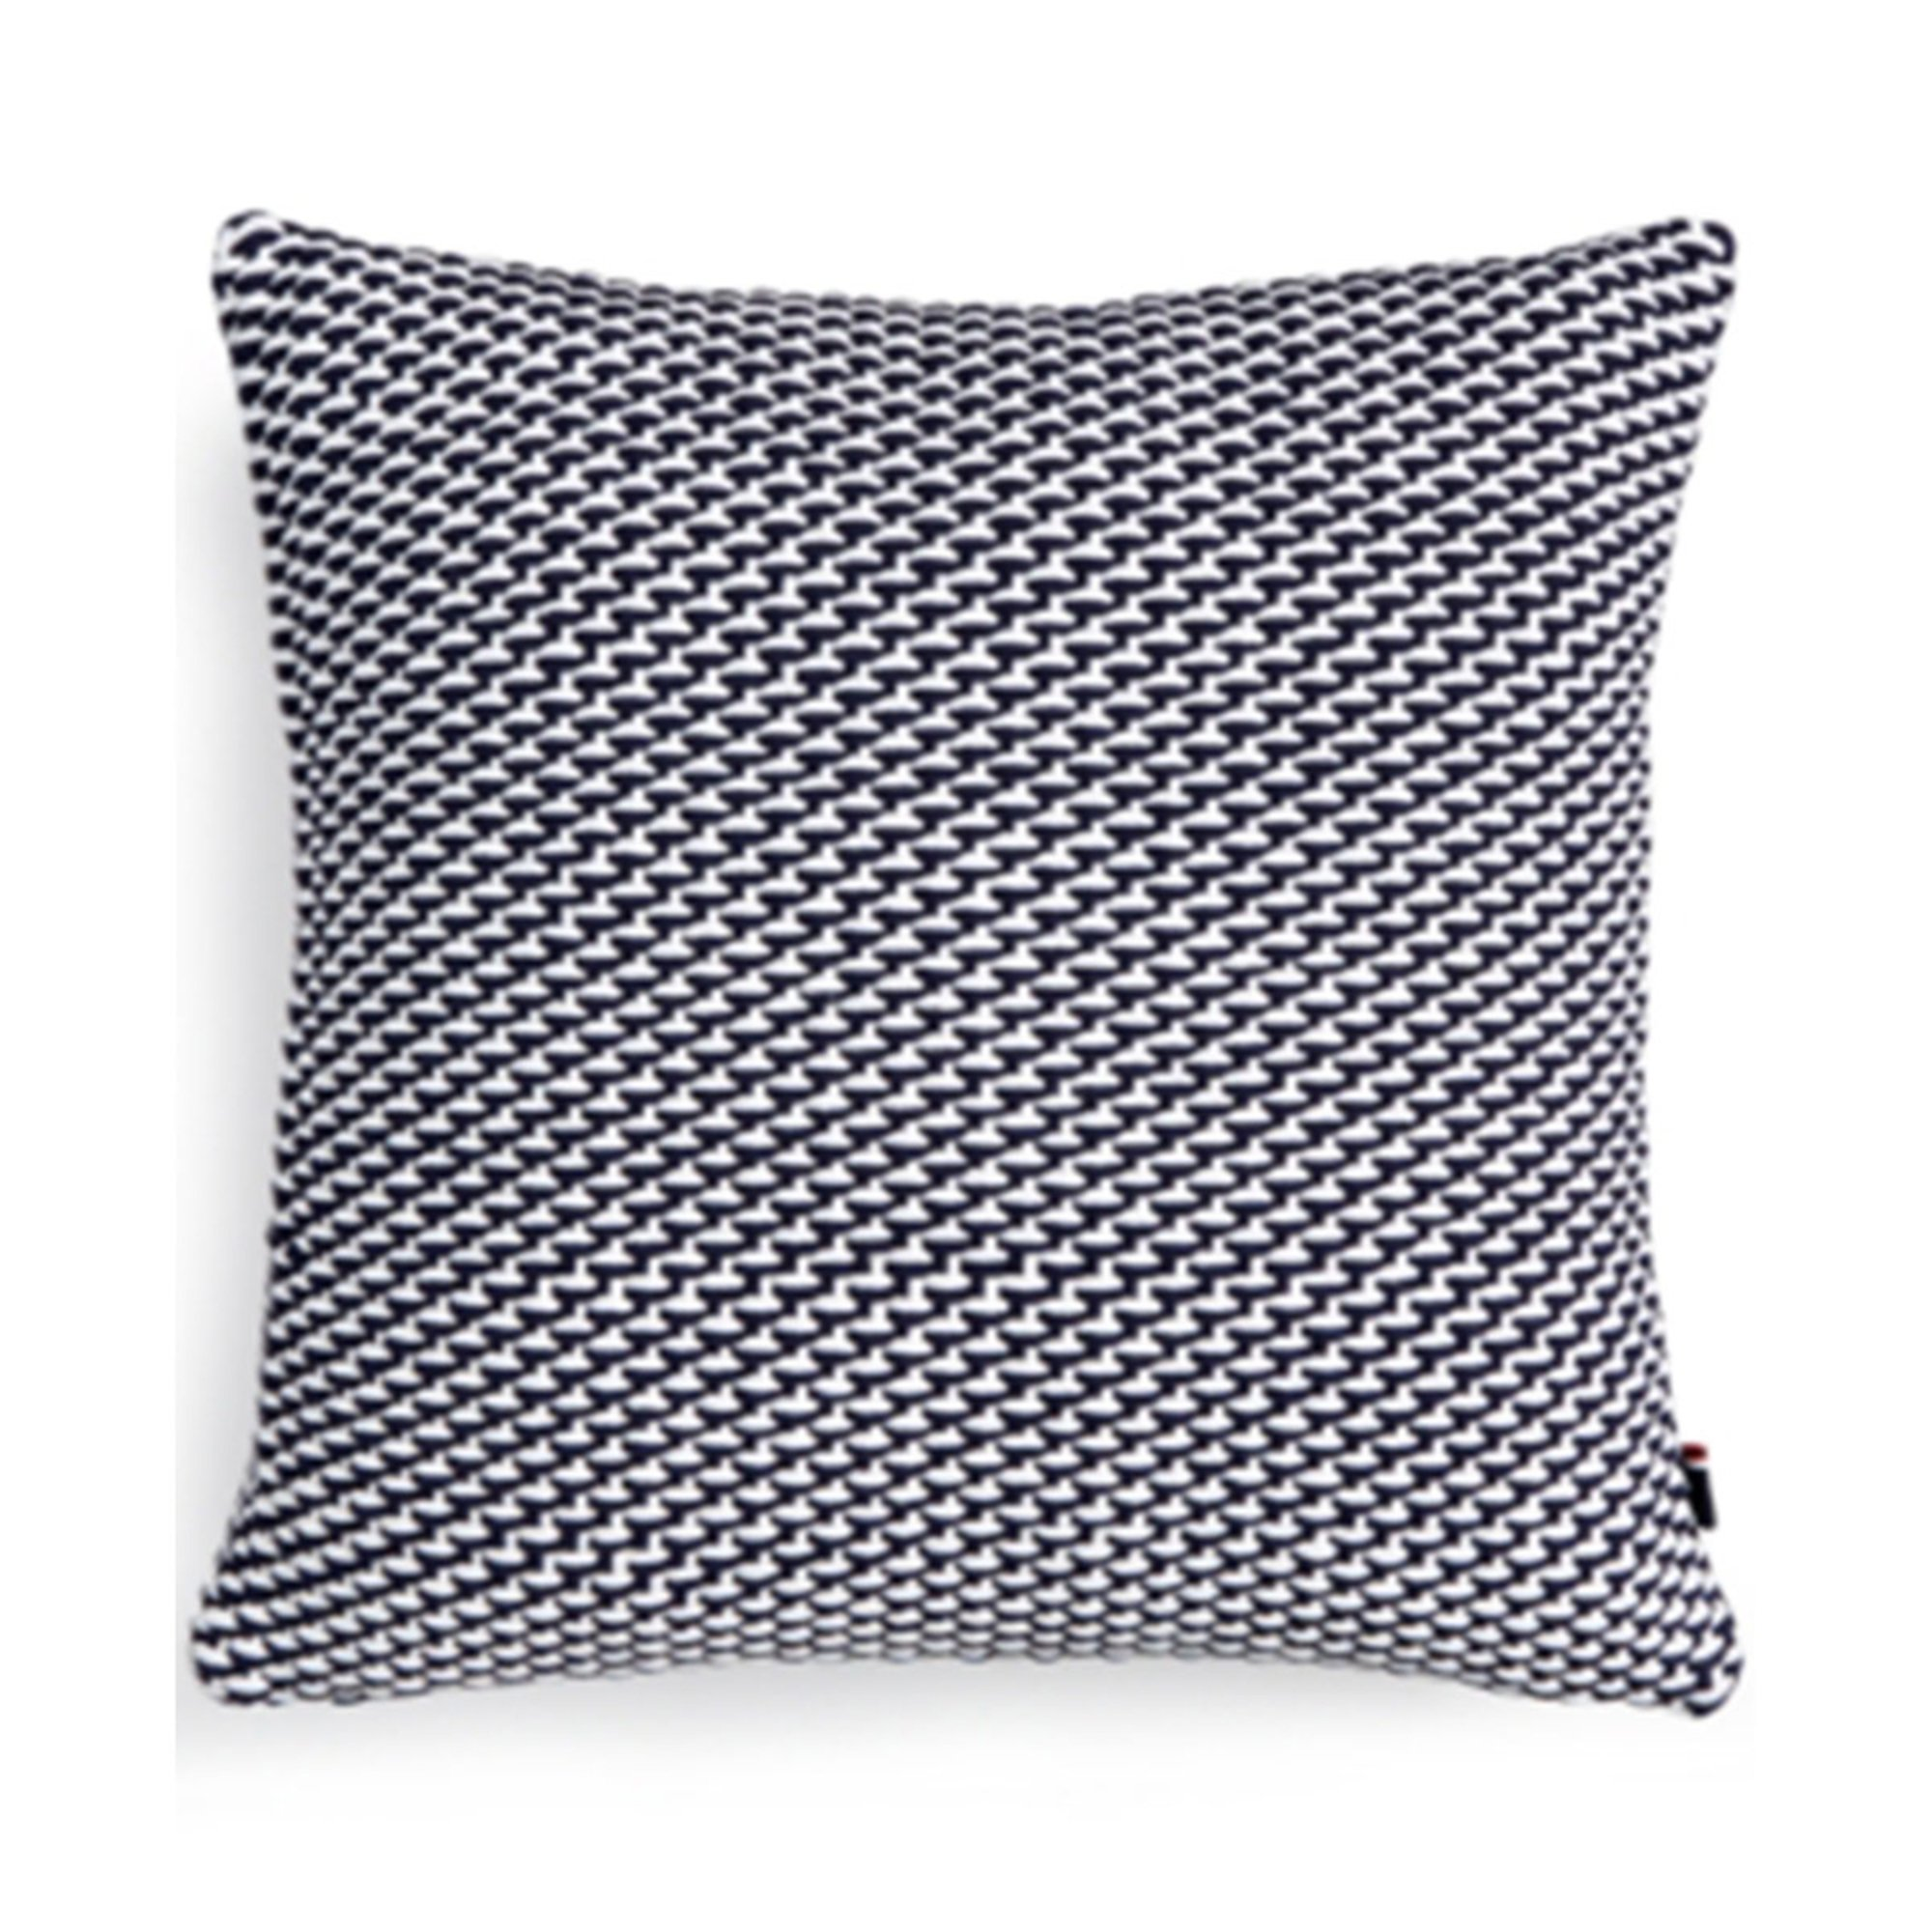 Tommy Hilfiger Basketweave 16x16 Pillow, White/navy Decorative Pillows For The Home - Shop ...